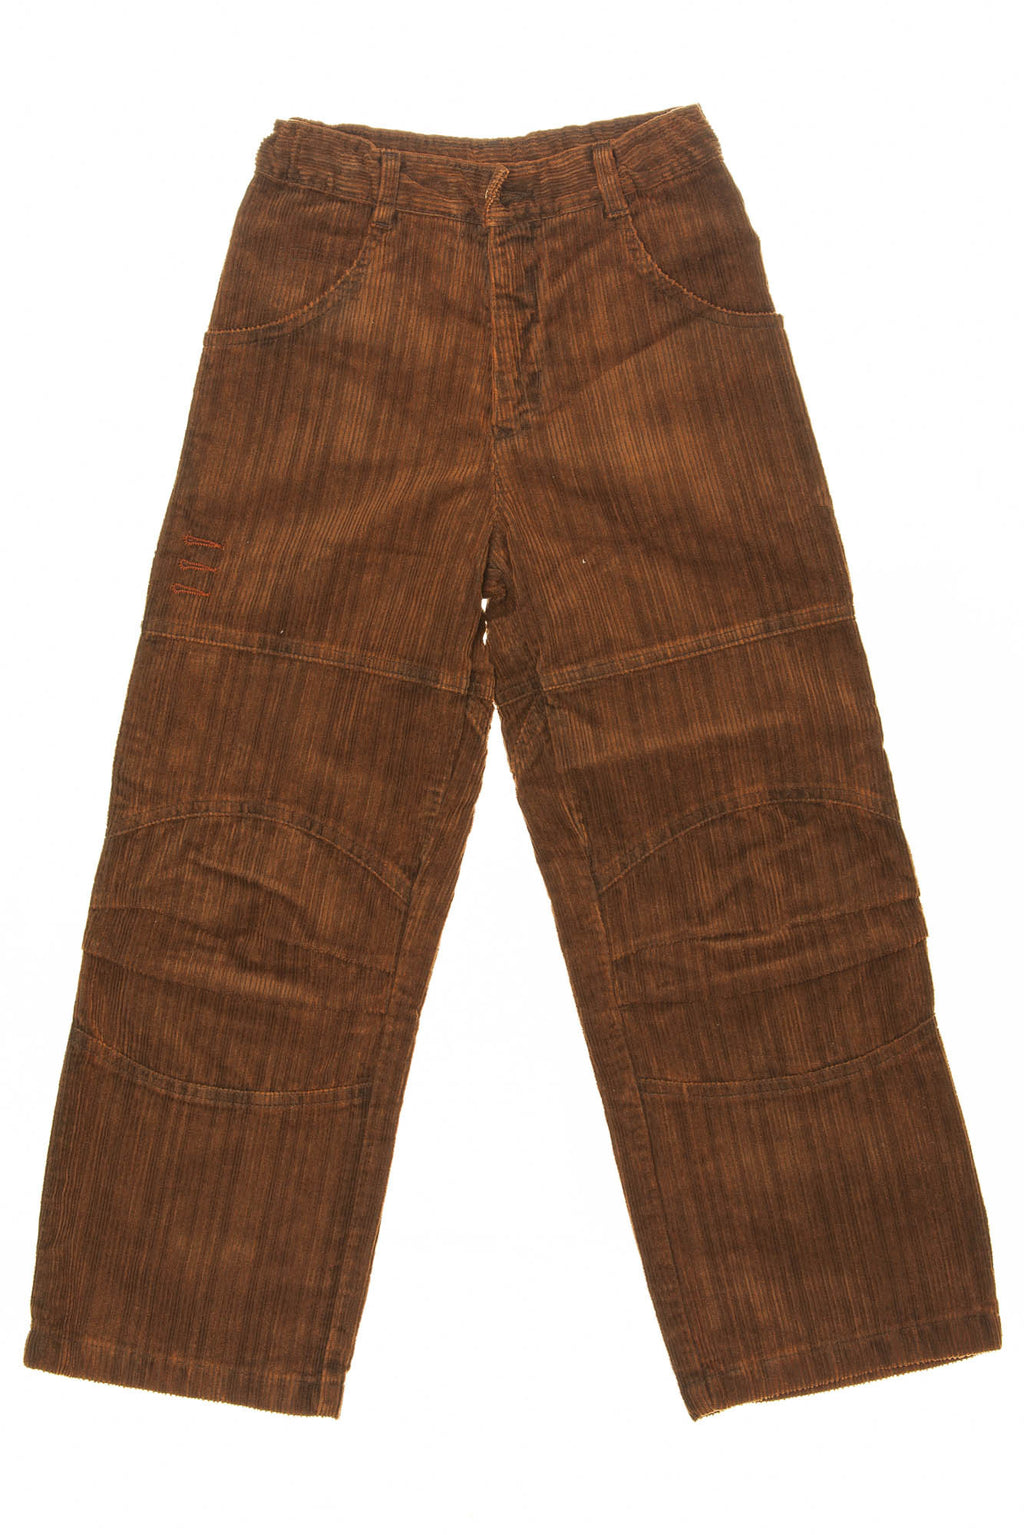 Catimini - Brown Corduroy Pants - 8A